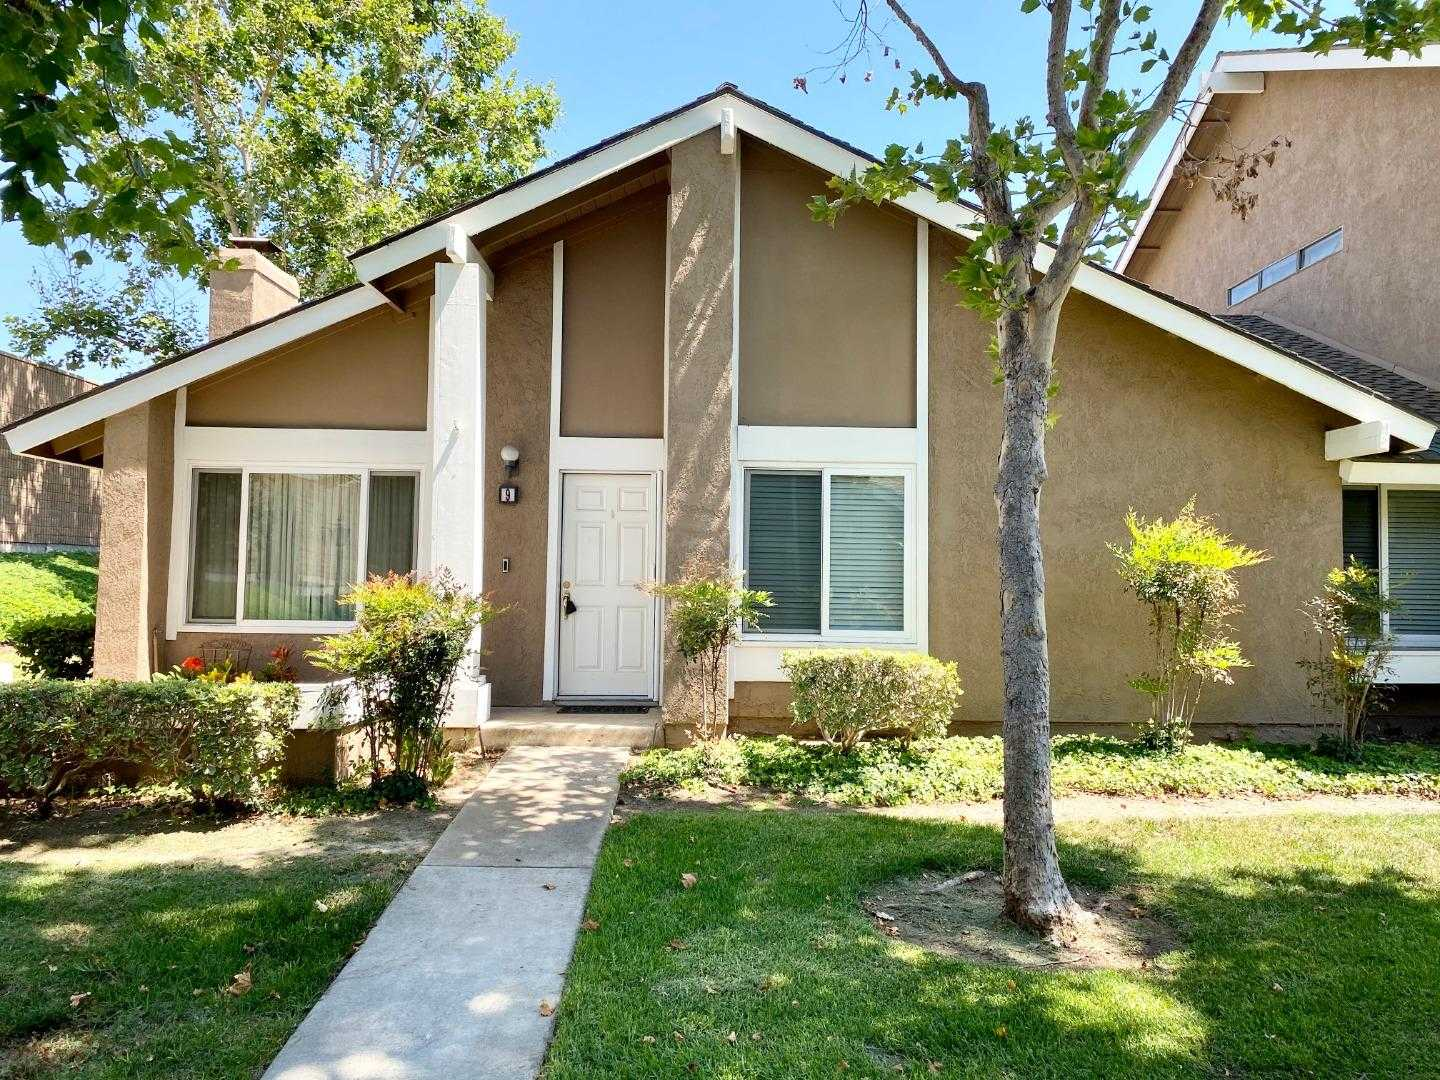 $689,000 - 3Br/2Ba -  for Sale in Irvine